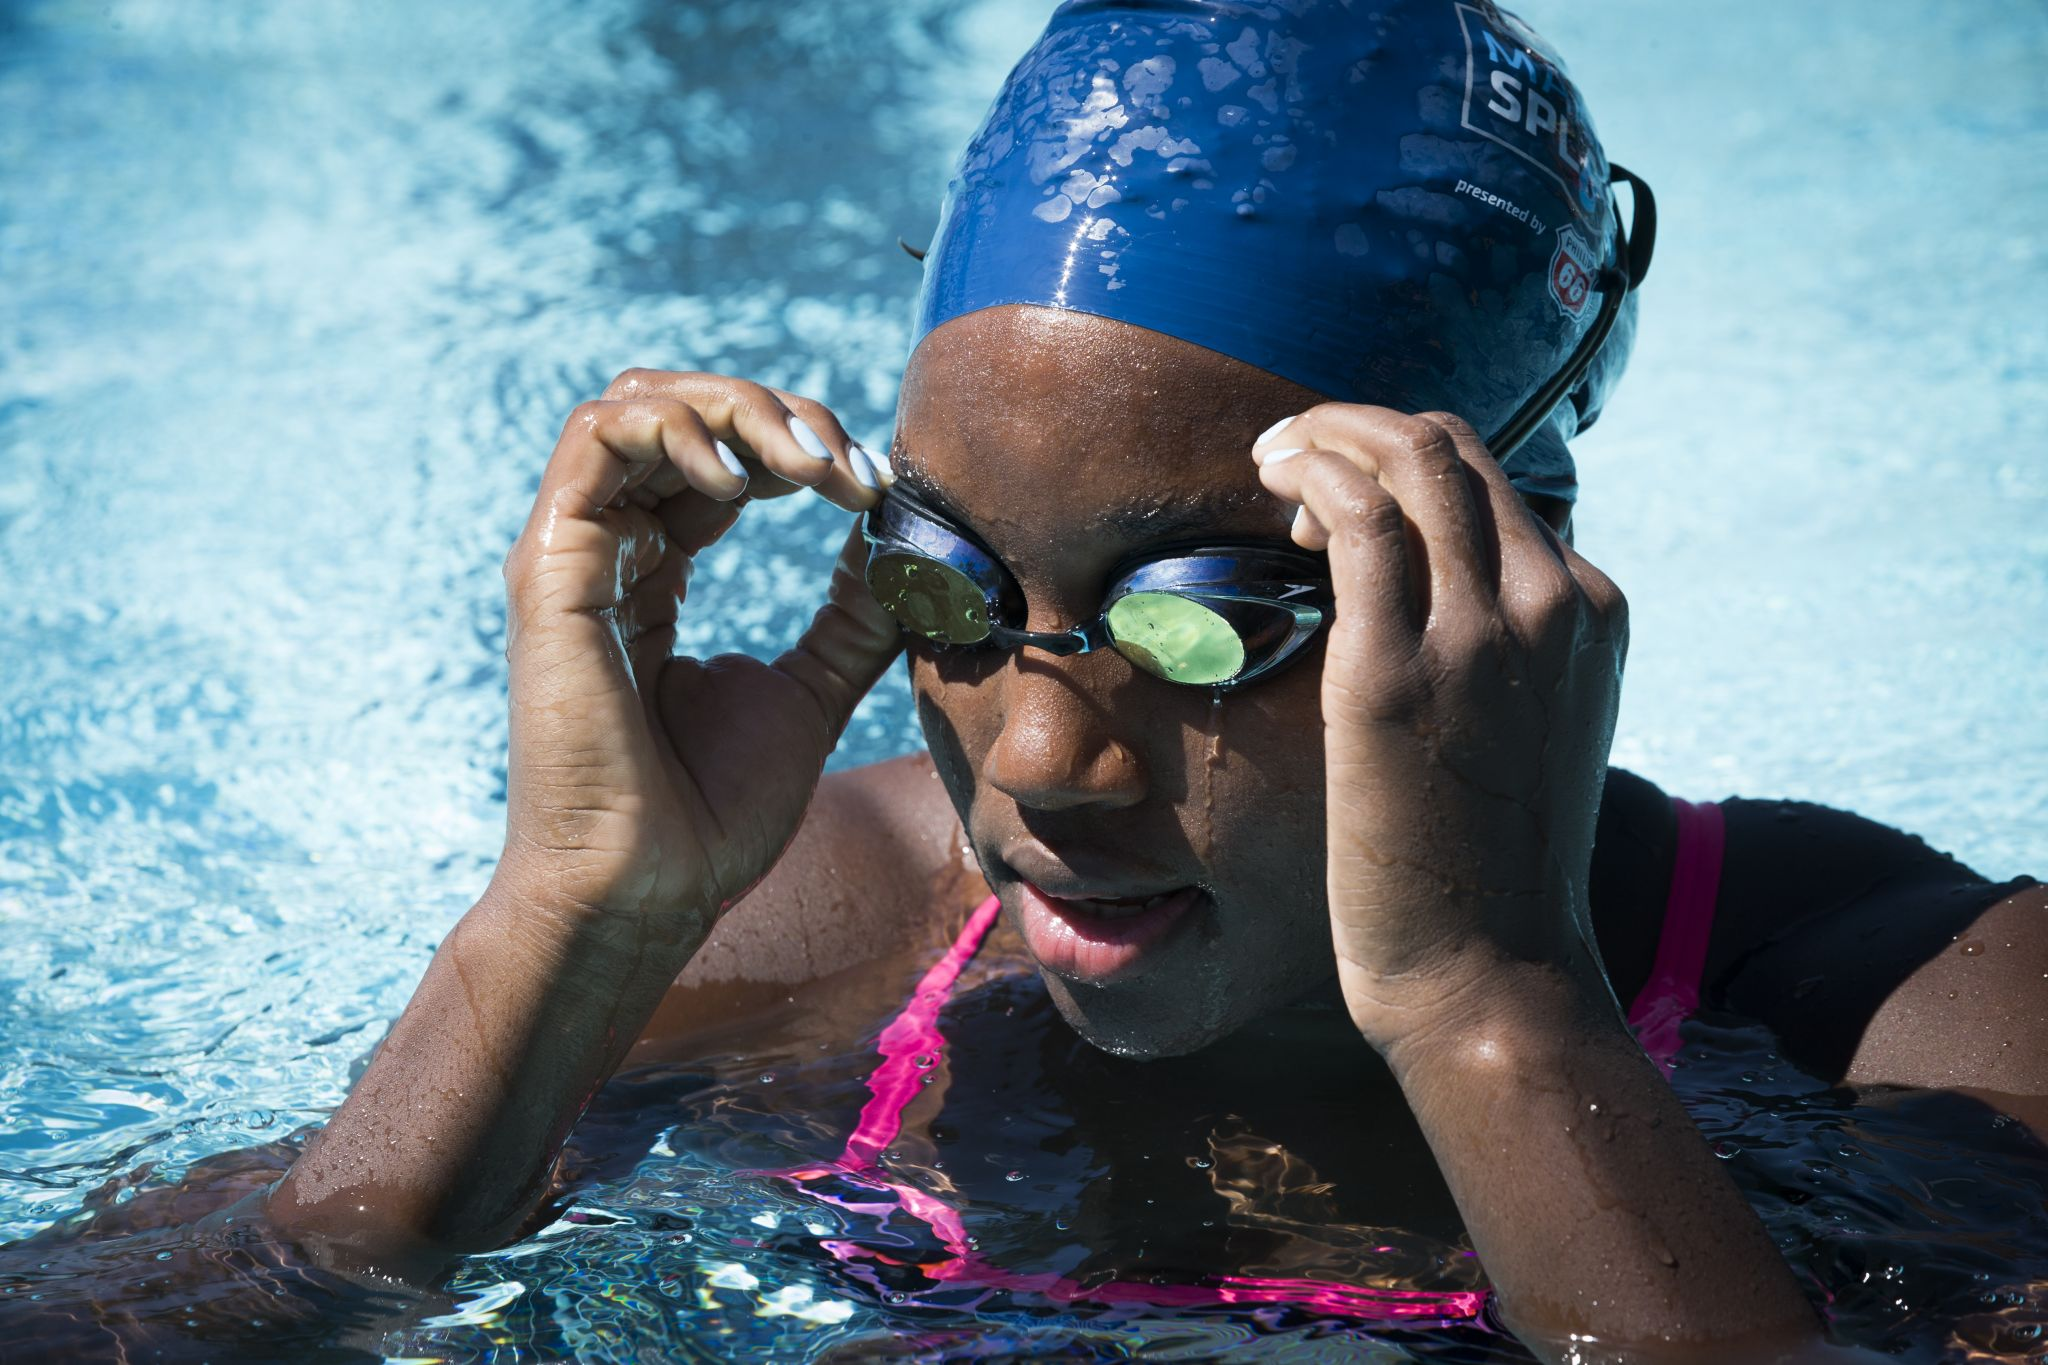 Some Houstonians got swimming lessons from an Olympian